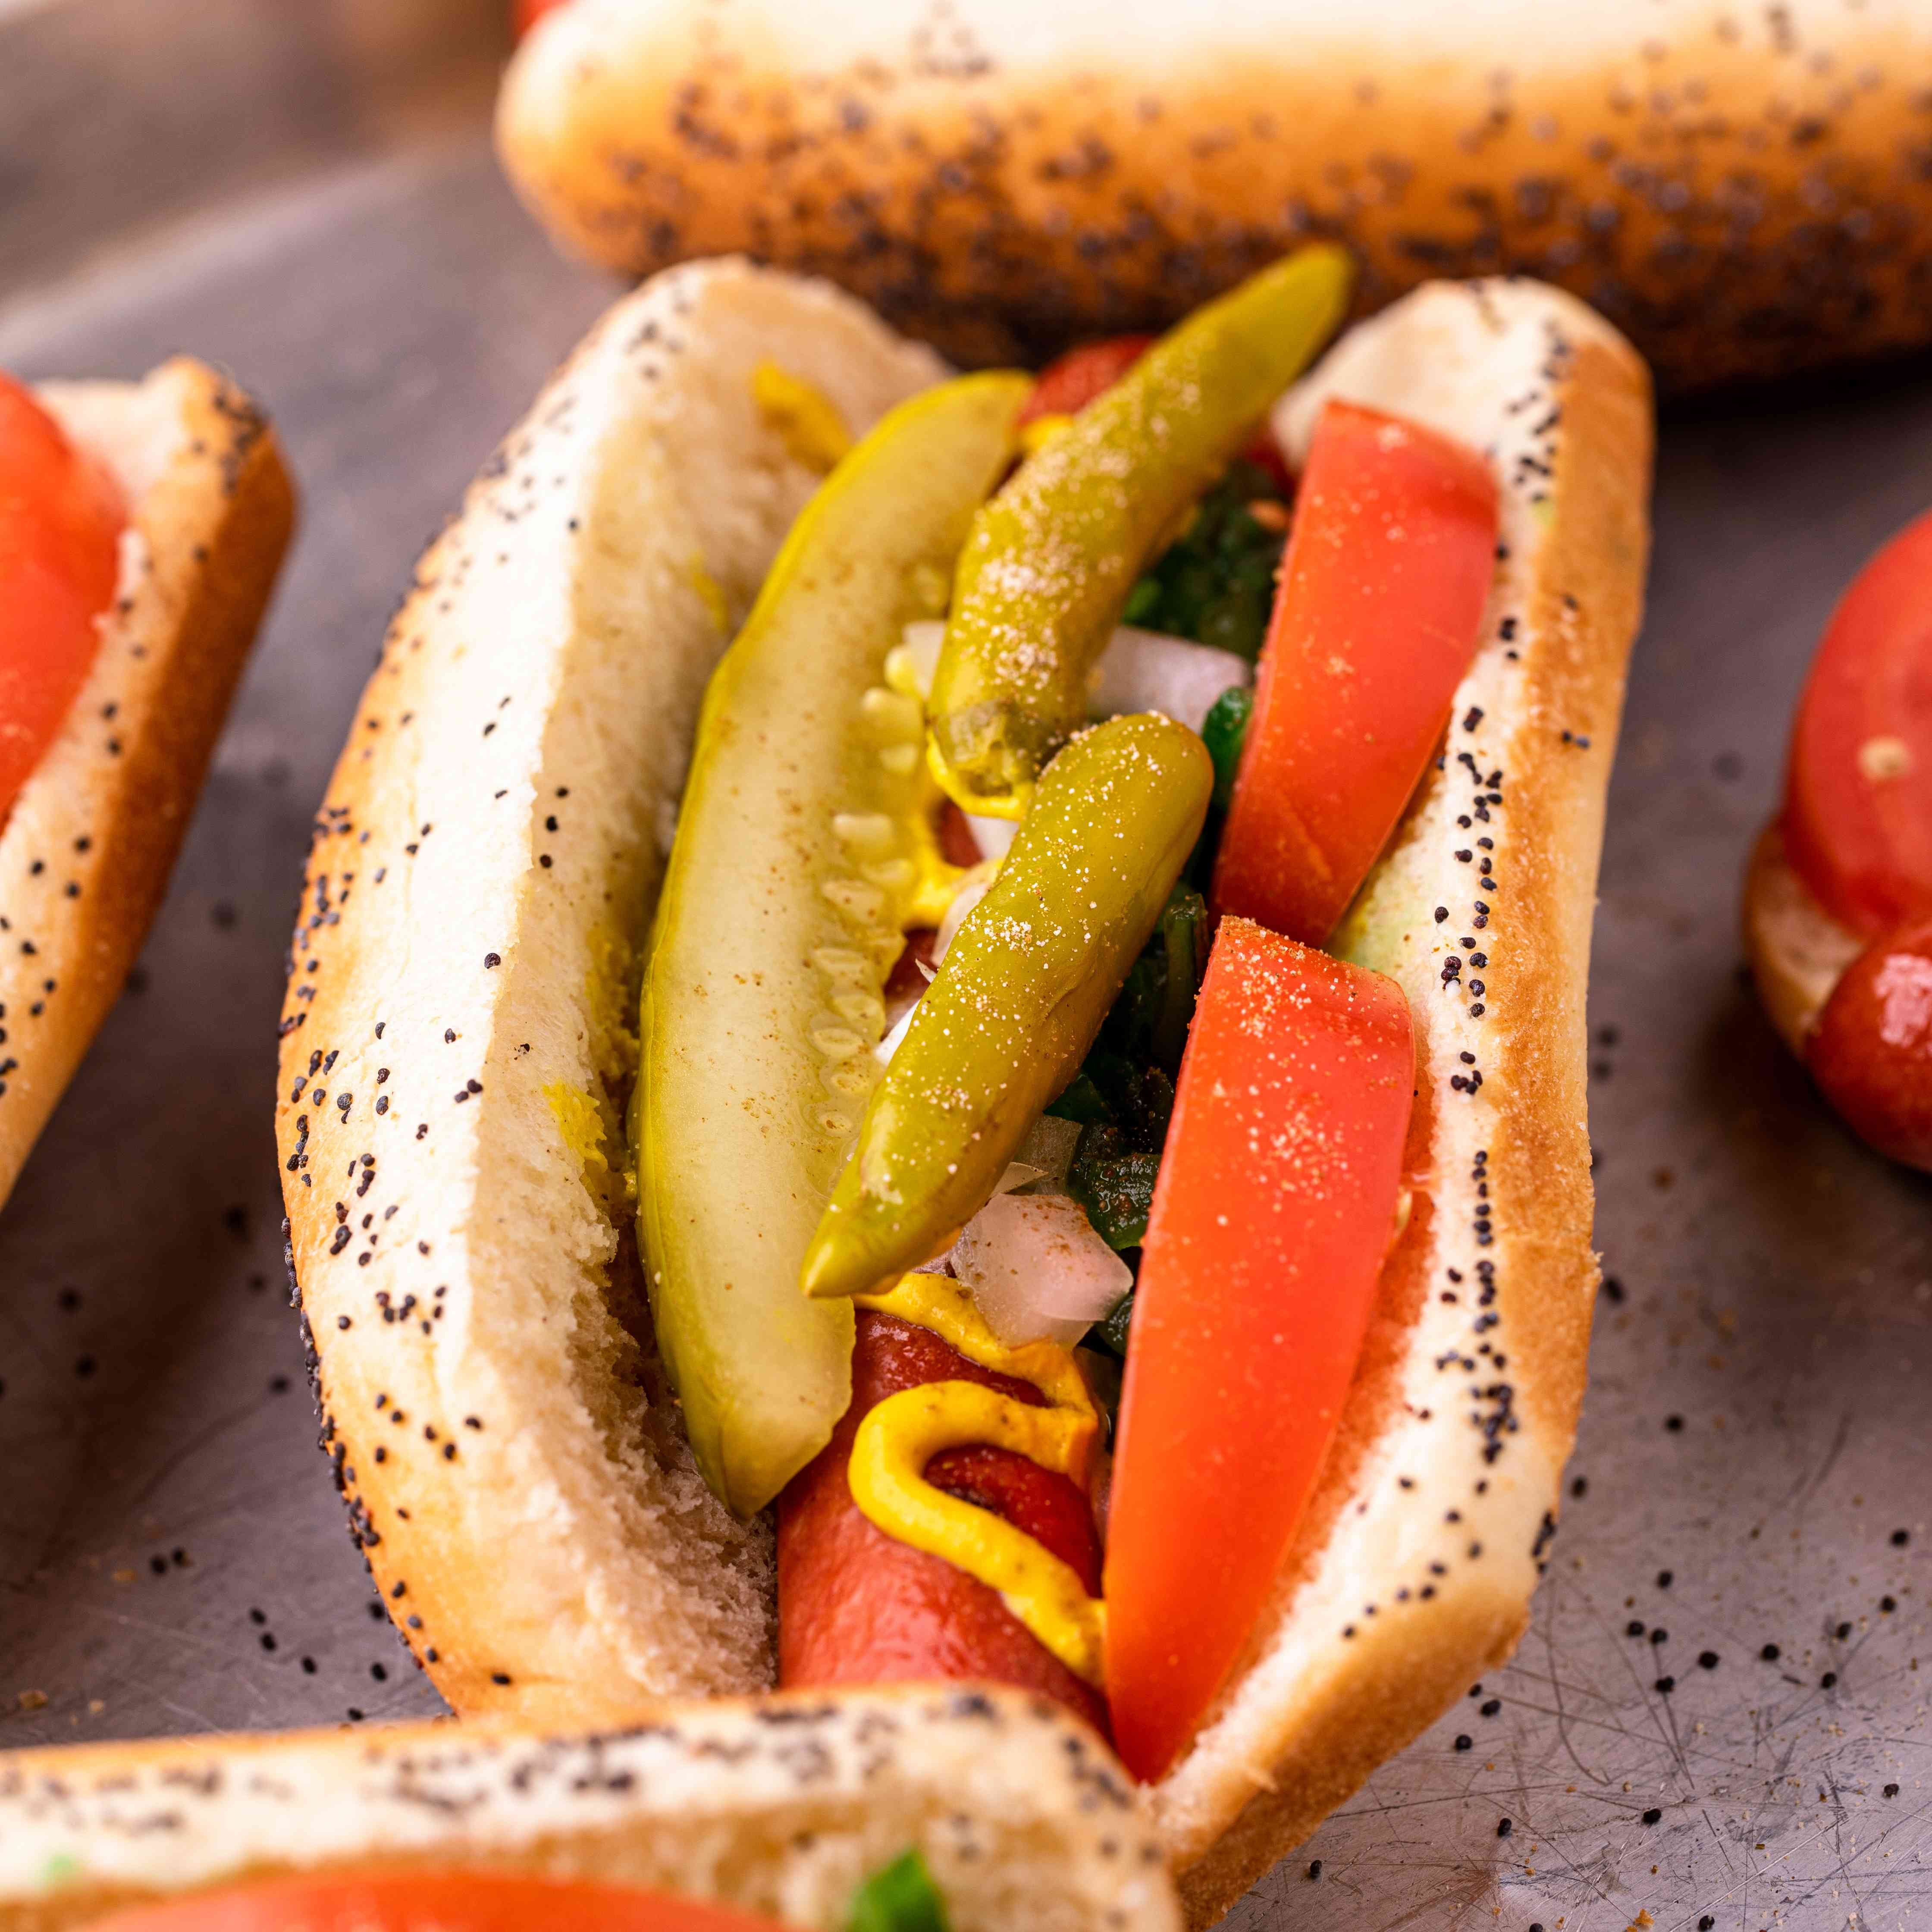 Chicago dogs with tomato and pickles on a pan.